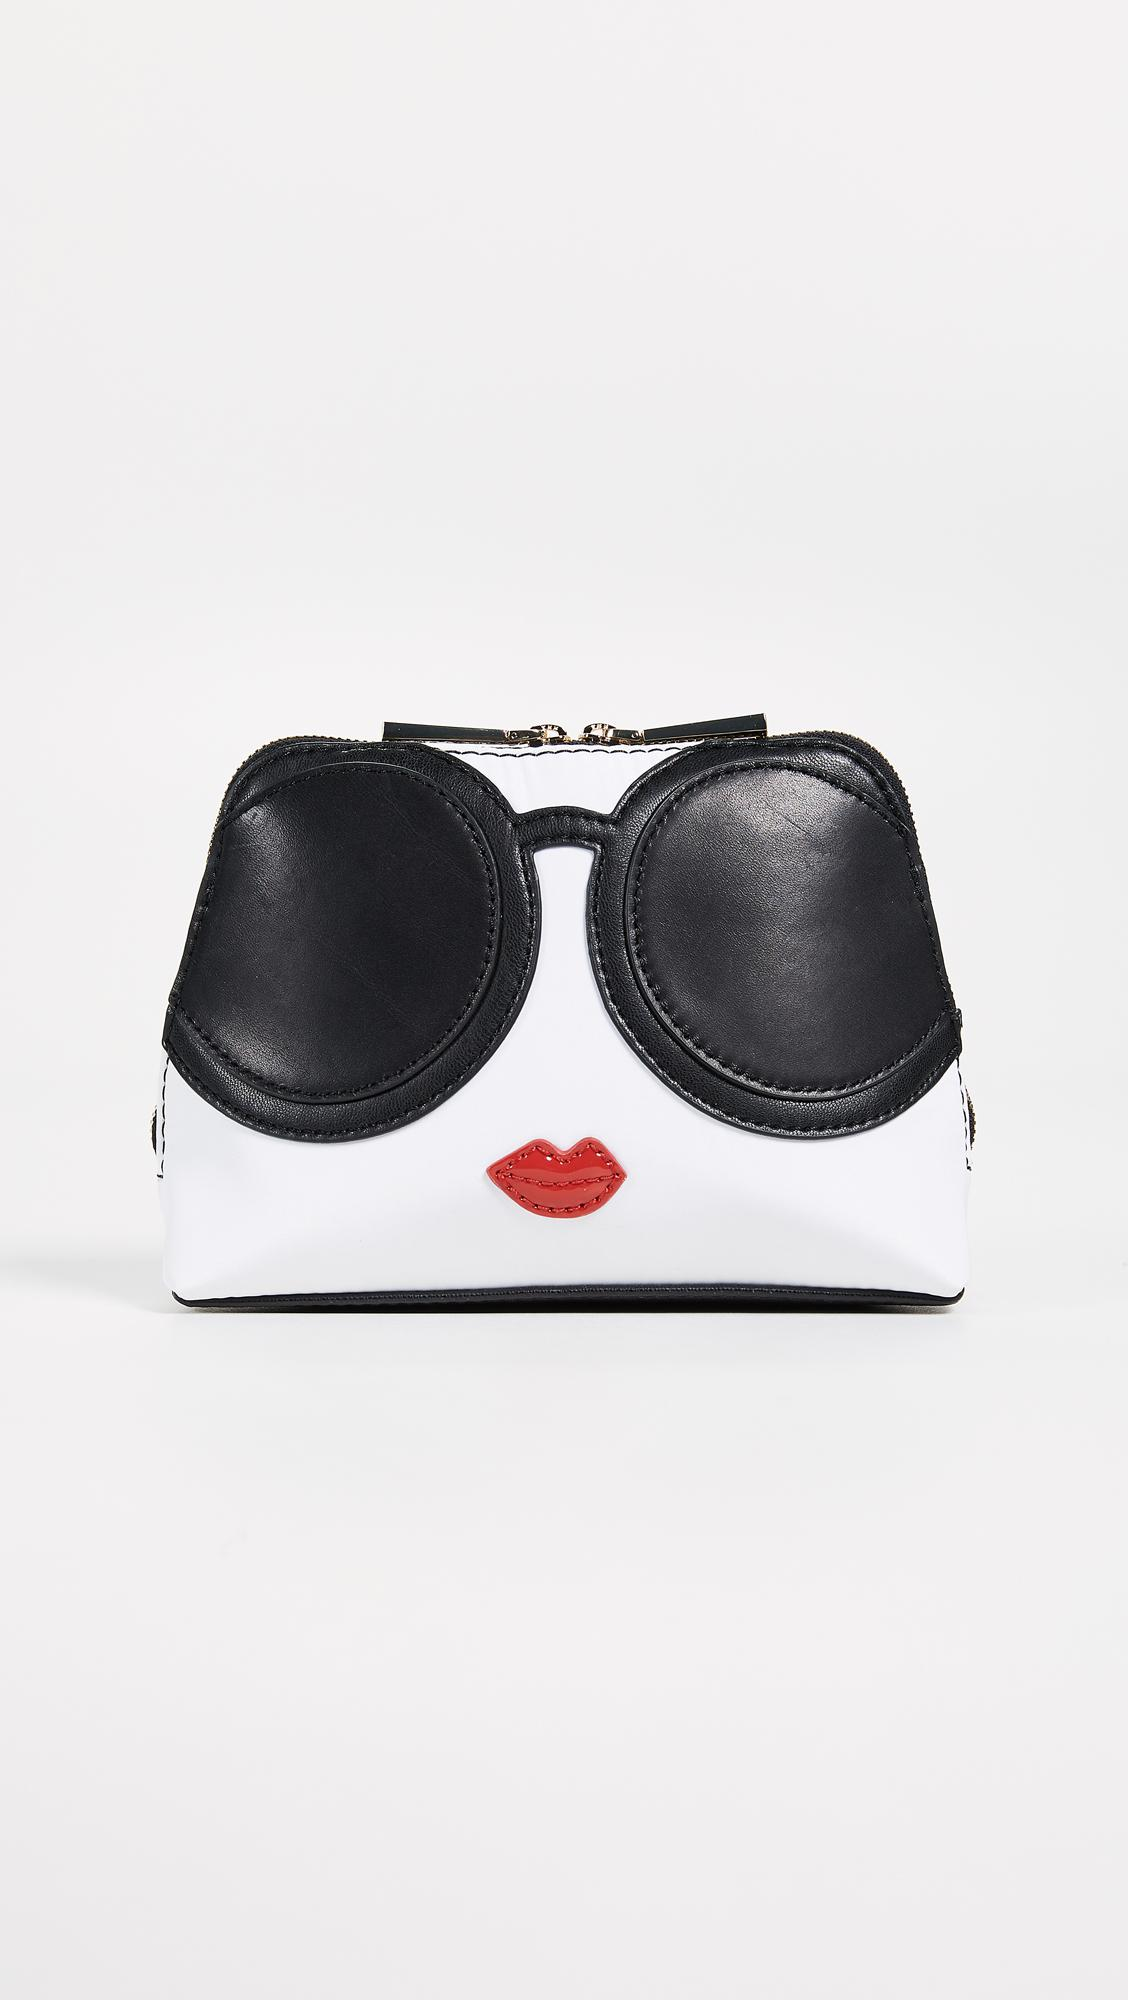 Stace Face Cosmetic Bag Alice & Olivia In China Cheap Online Cheap Sale Clearance Store ZG55LwaO